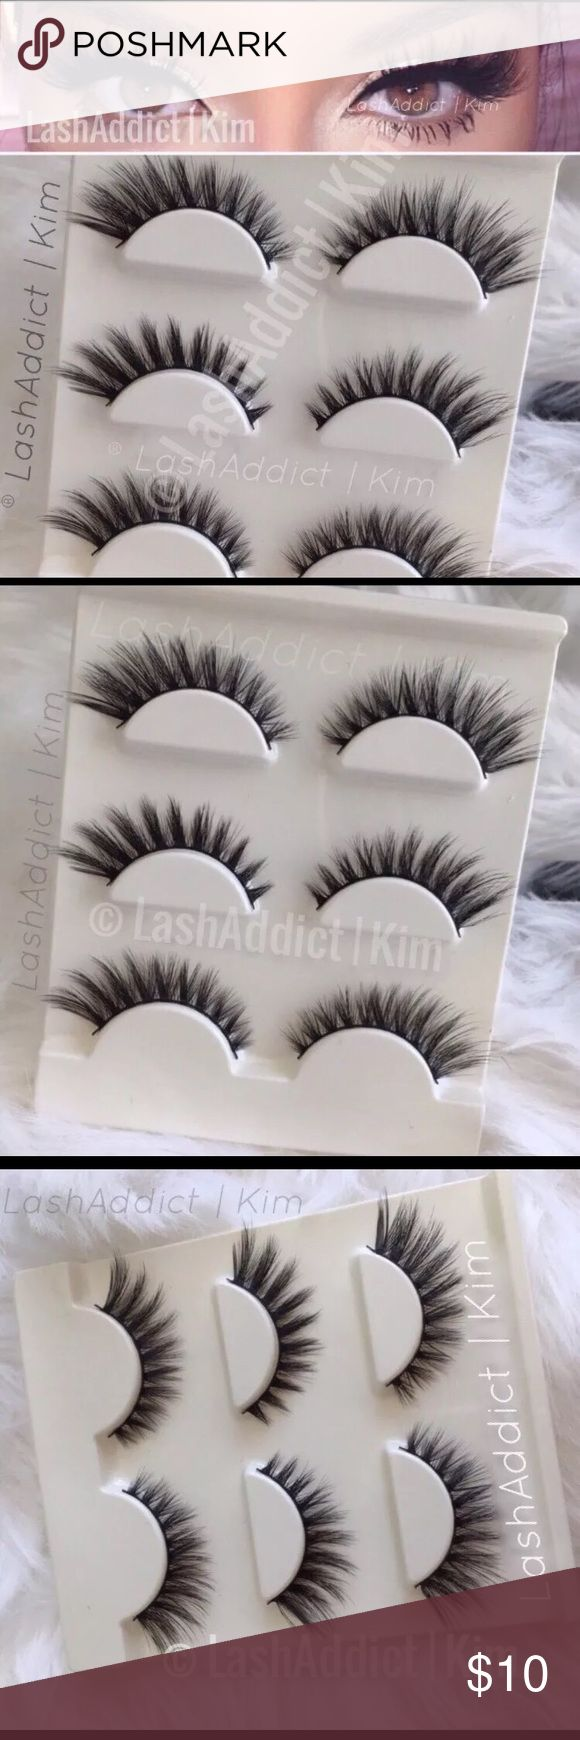 Spiky Mink Lashes Eyelashes 3d fur makeup new 3 Pairs Mink Lashes Eyelashes Last Up To 10-25 Applications  With Proper Care Style: Flutter Wsp spiky Shipping within 1 Business Day Makeup False Eyelashes